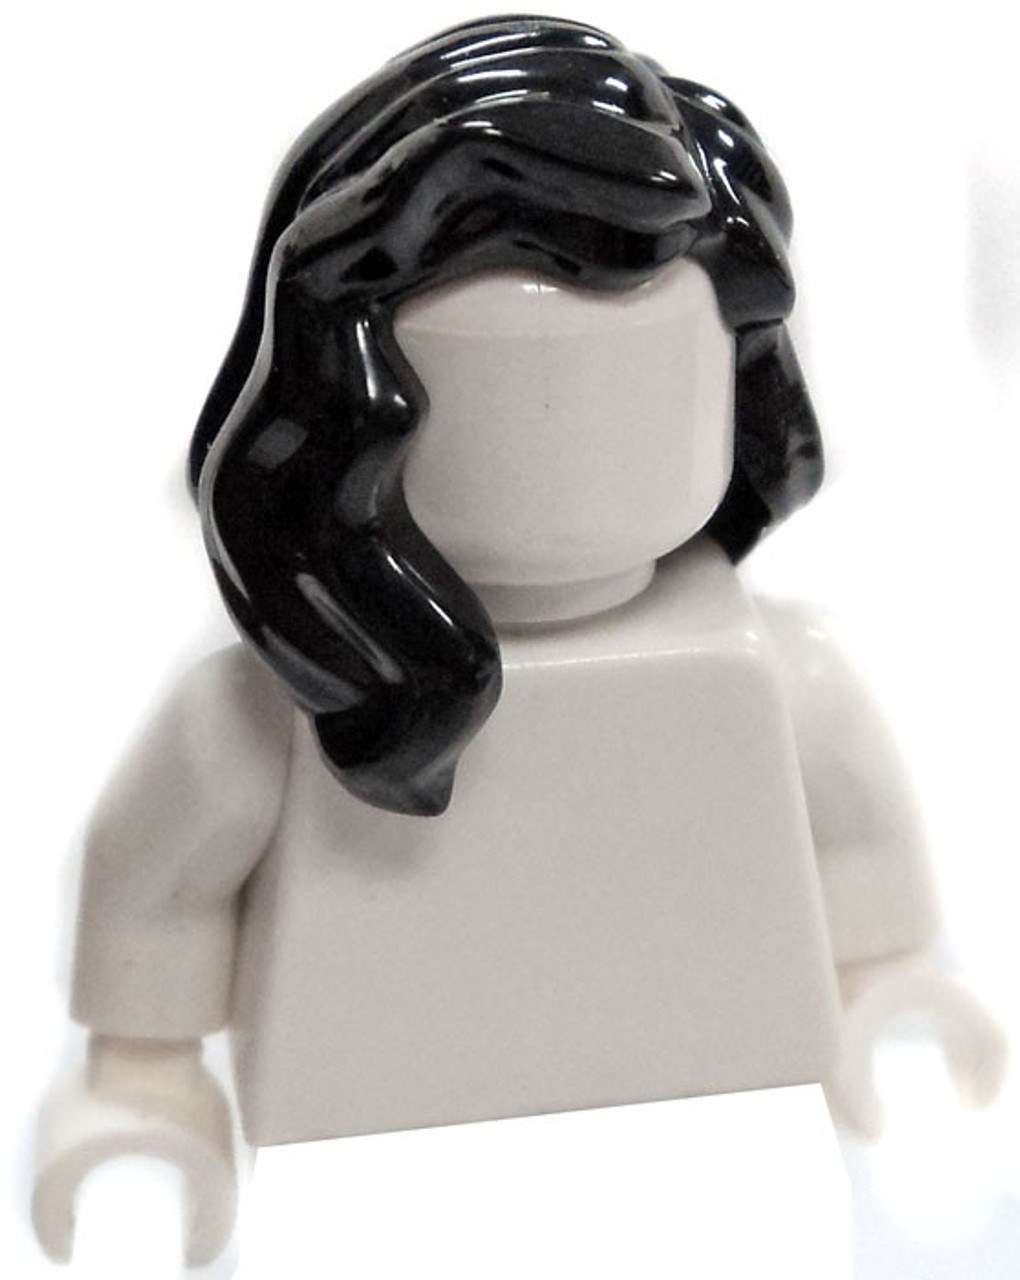 Lego Pigtail Minifig Hair x 1 Black for Minifigure